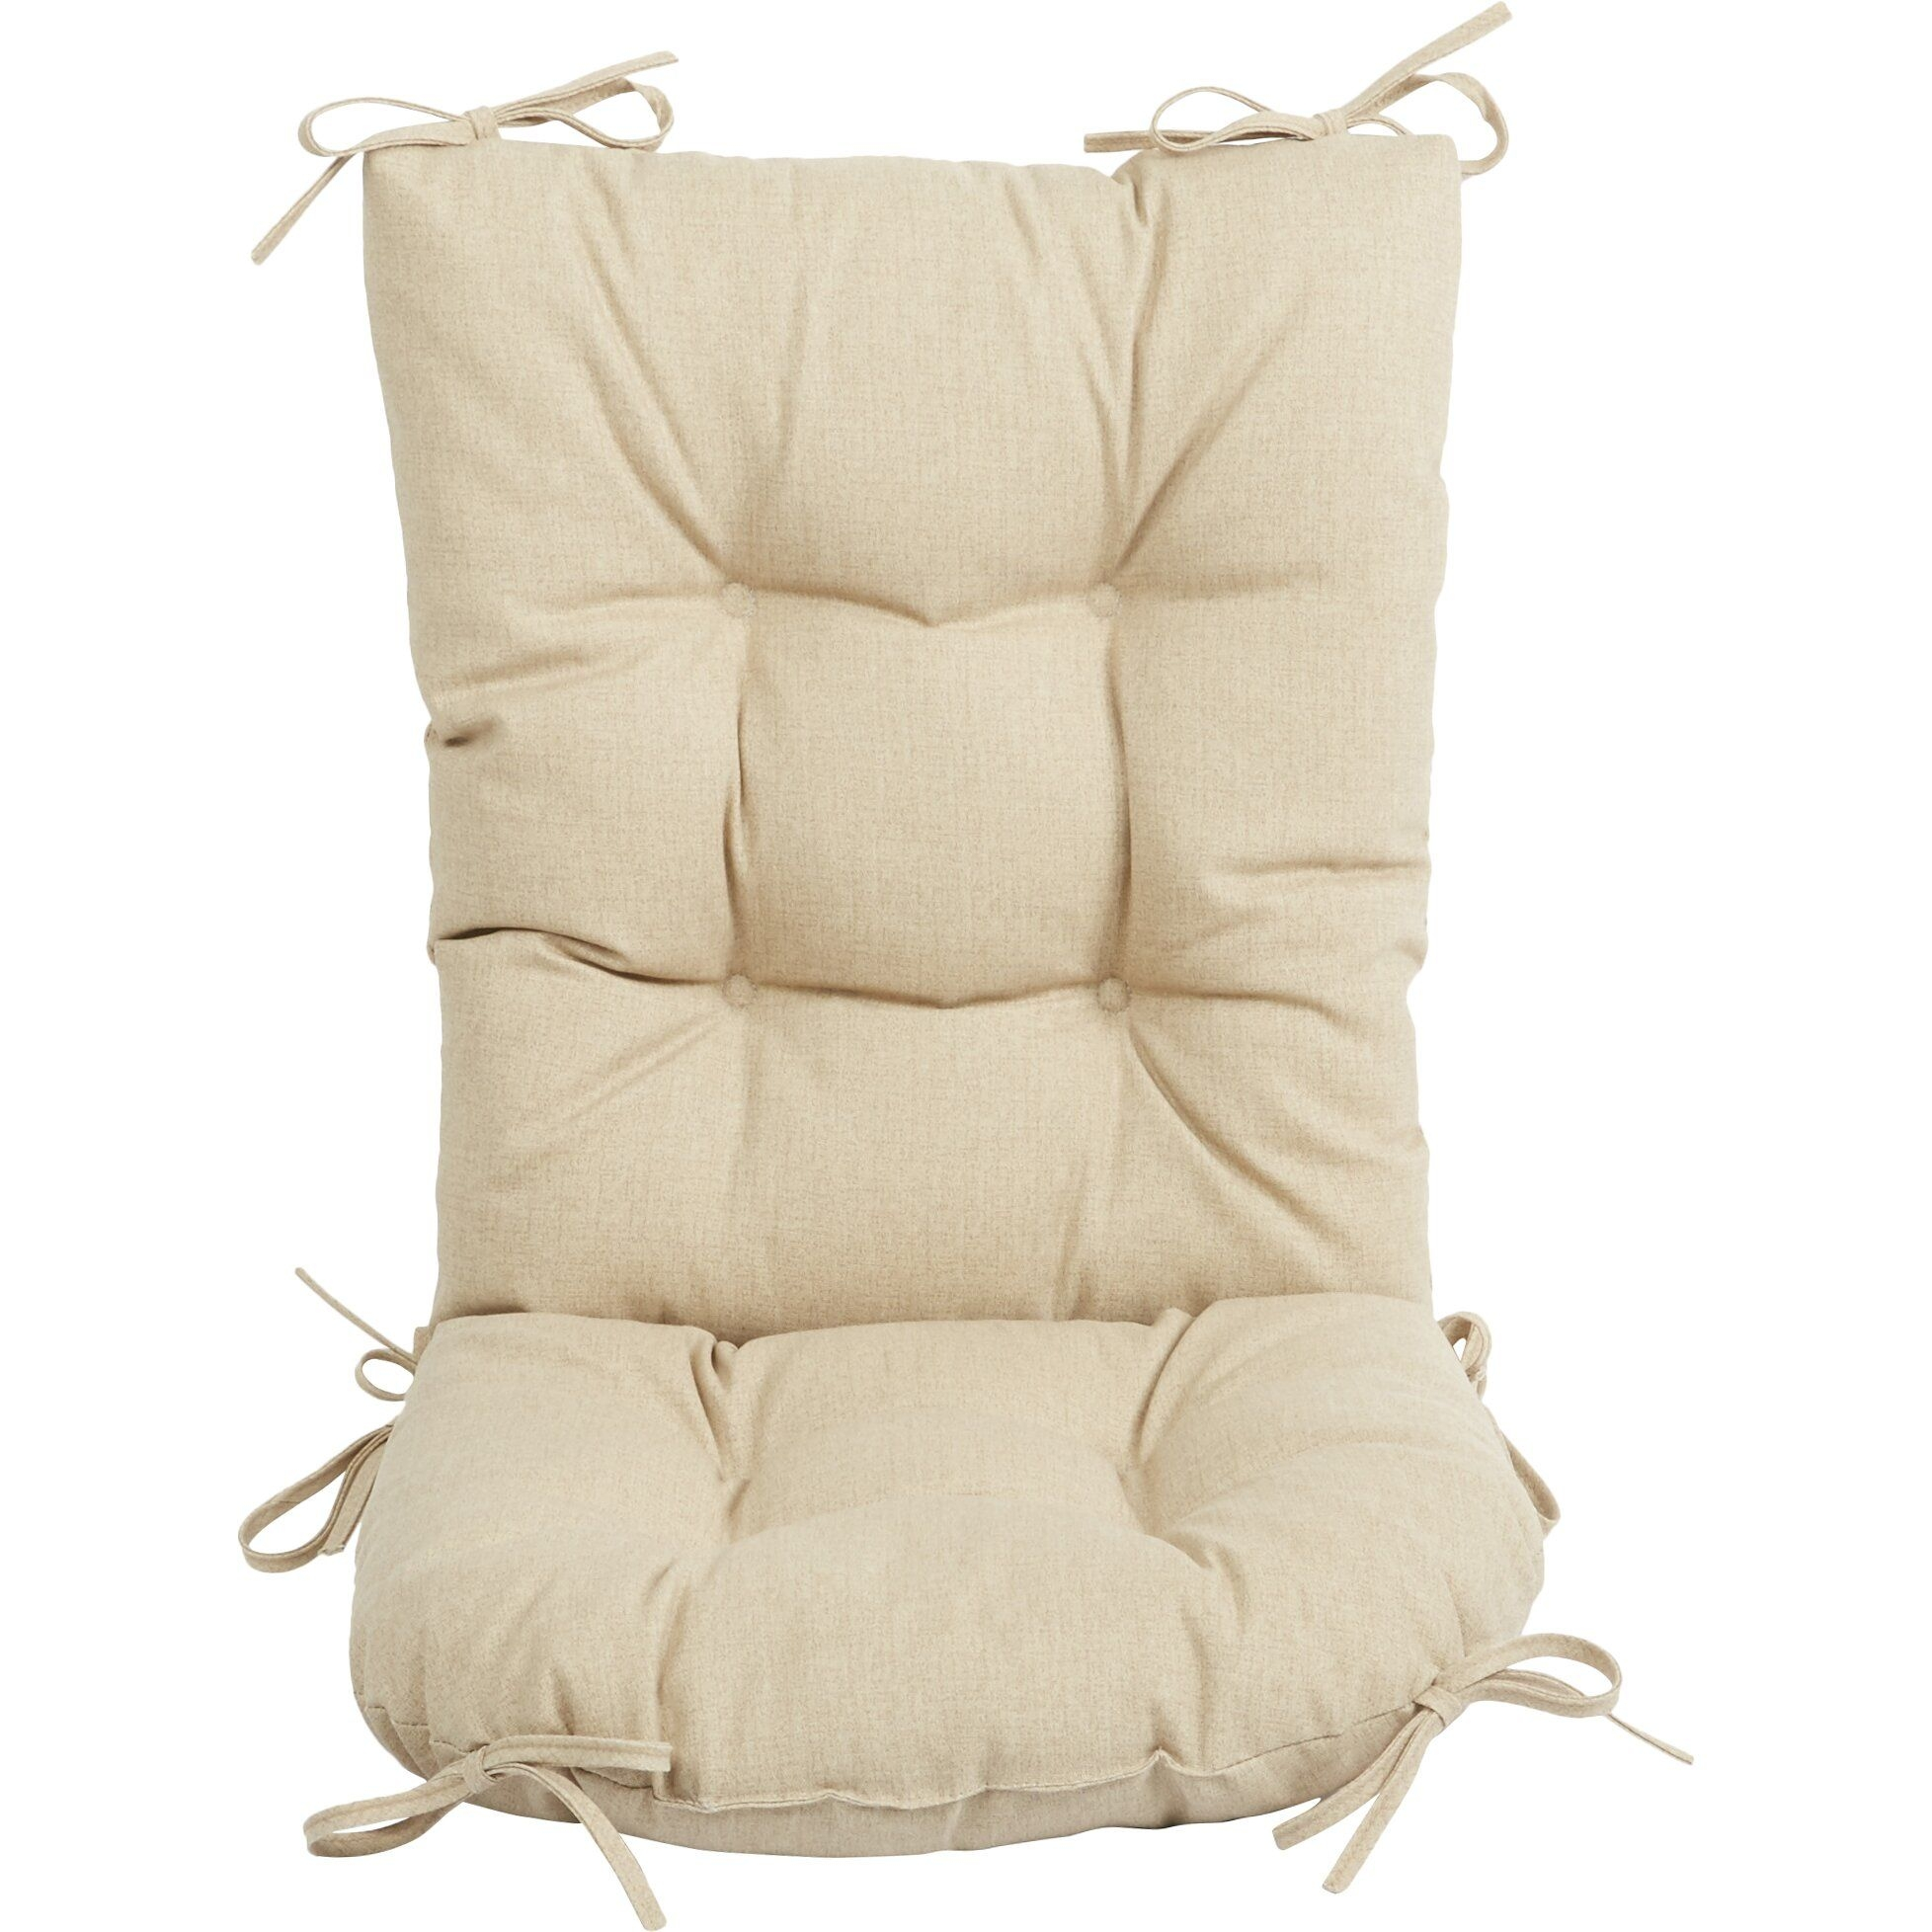 Wayfair Basics Wayfair Basics Outdoor 2 Piece Rocking Chair Cushion Set  Reviews  Wayfairca